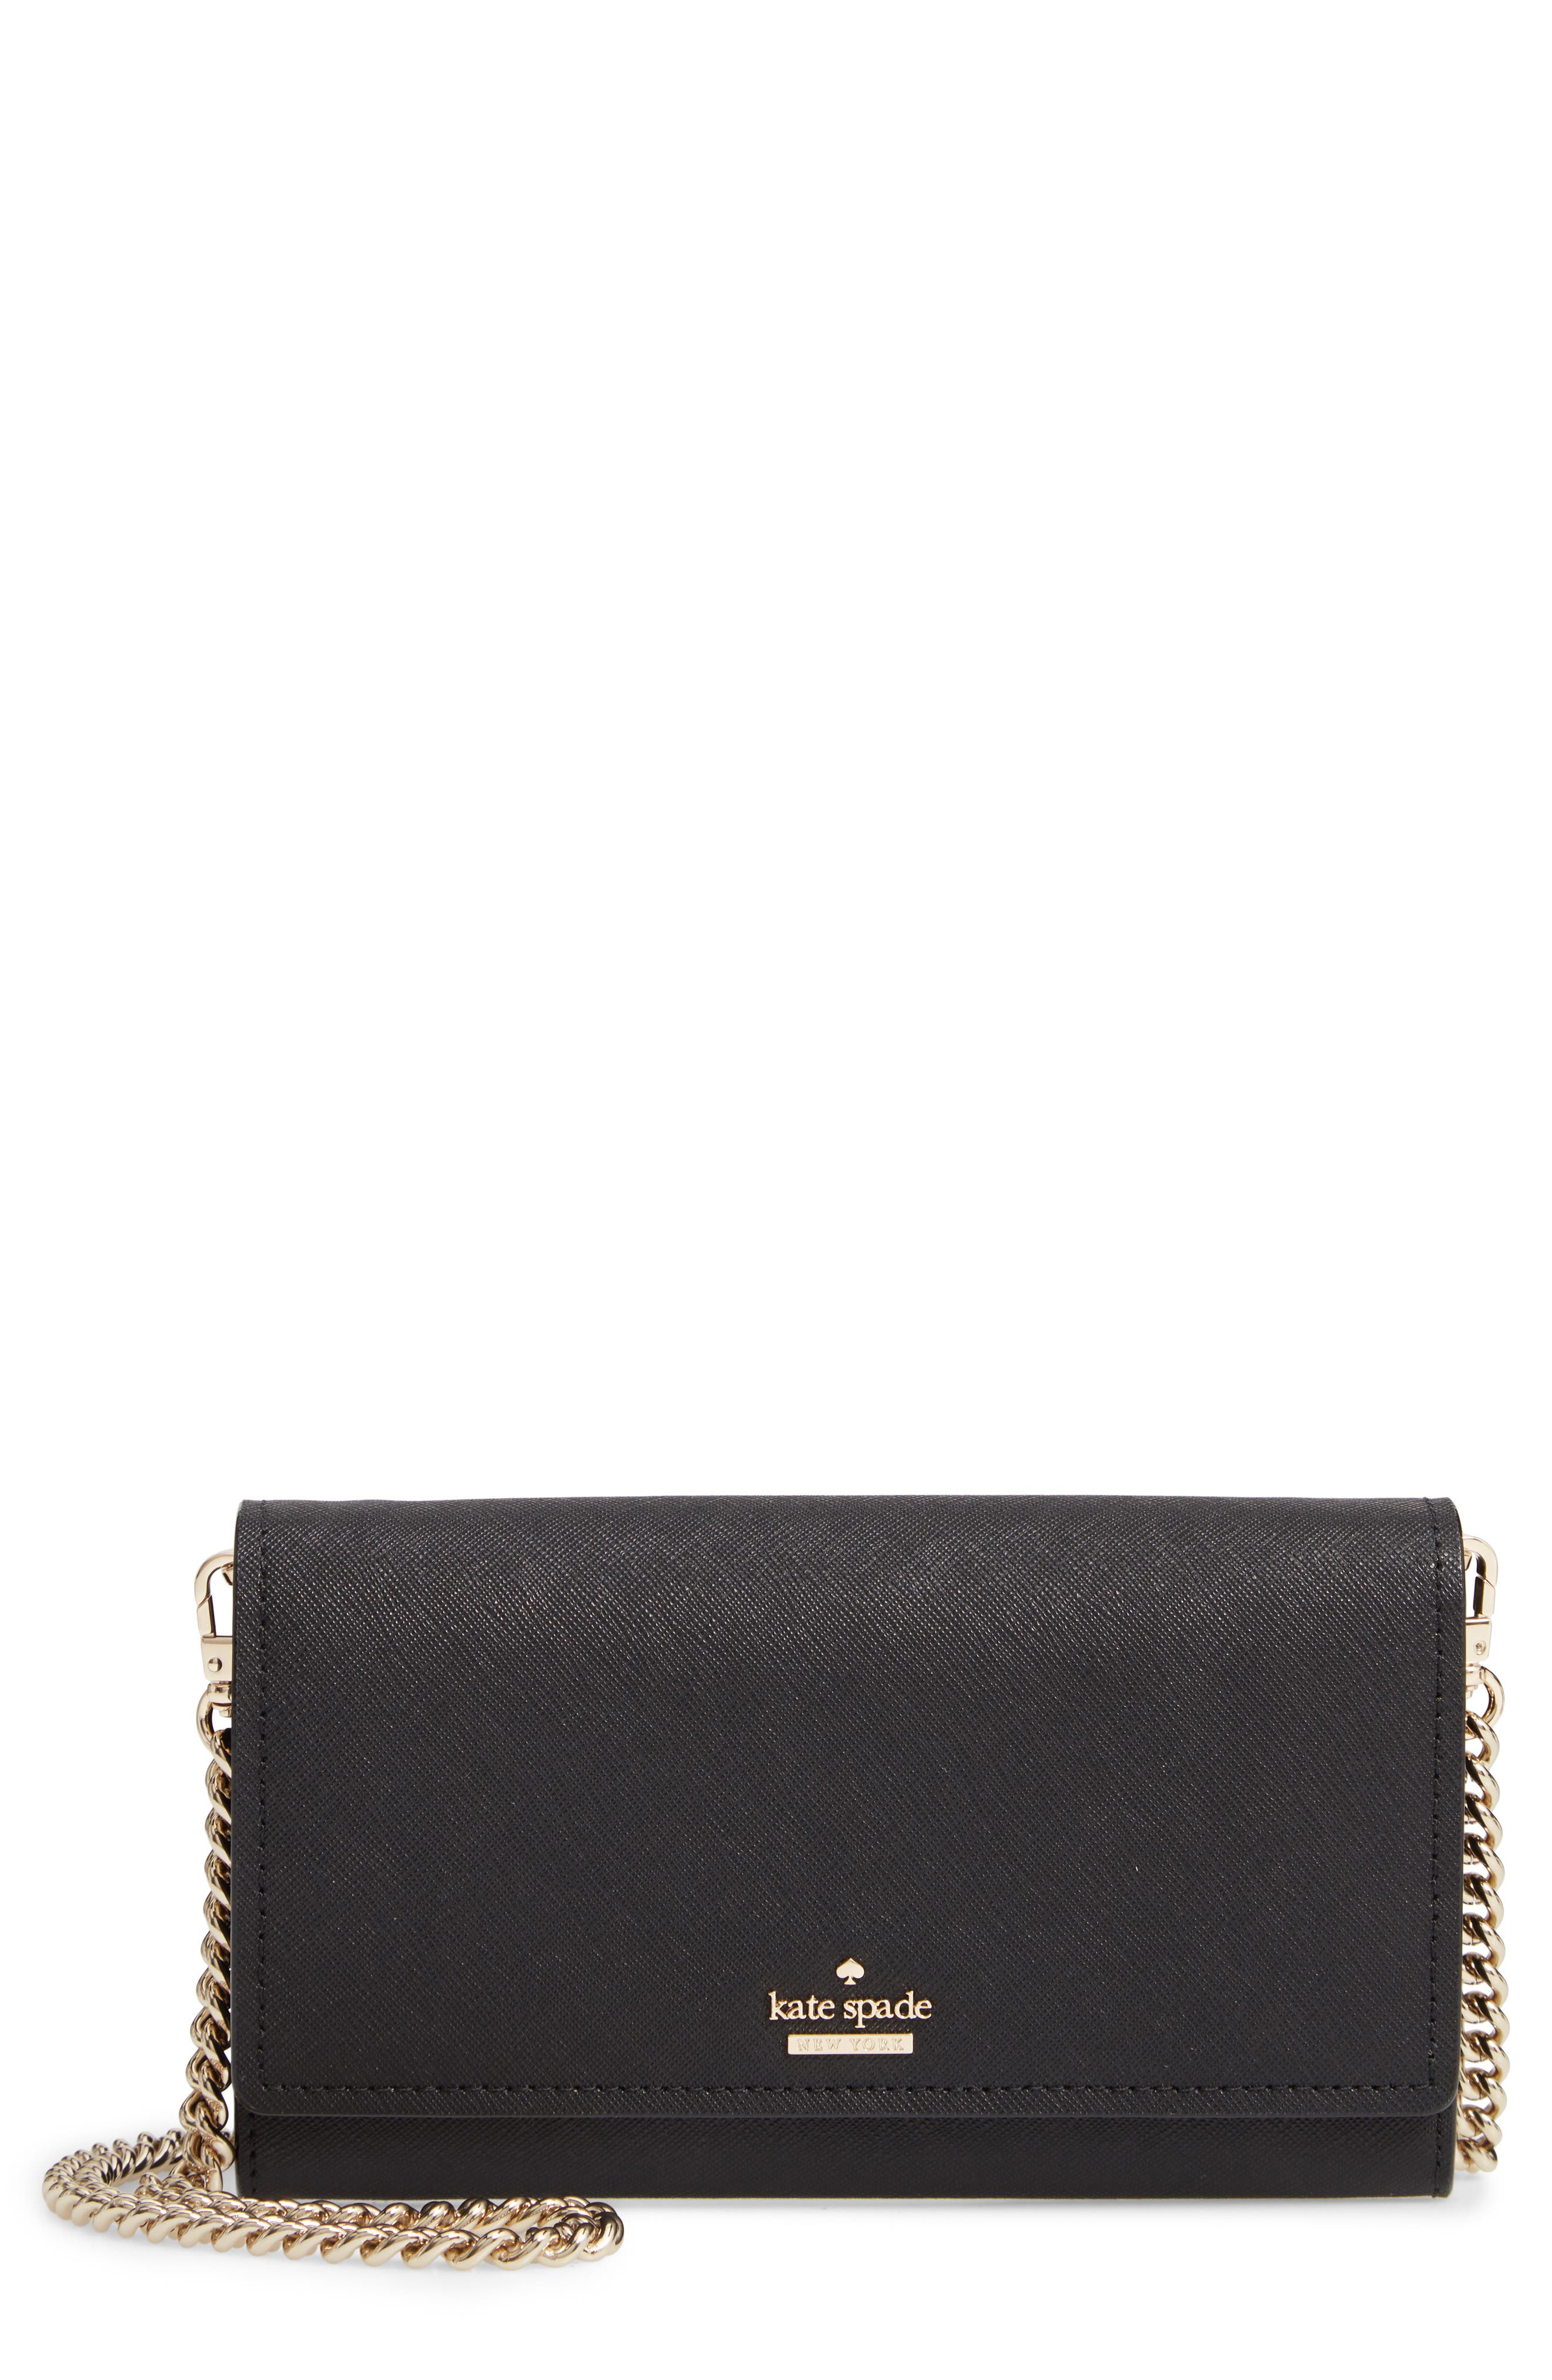 KATE SPADE NEW YORK cameron street - franny leather wallet on a chain, Main, color, 001